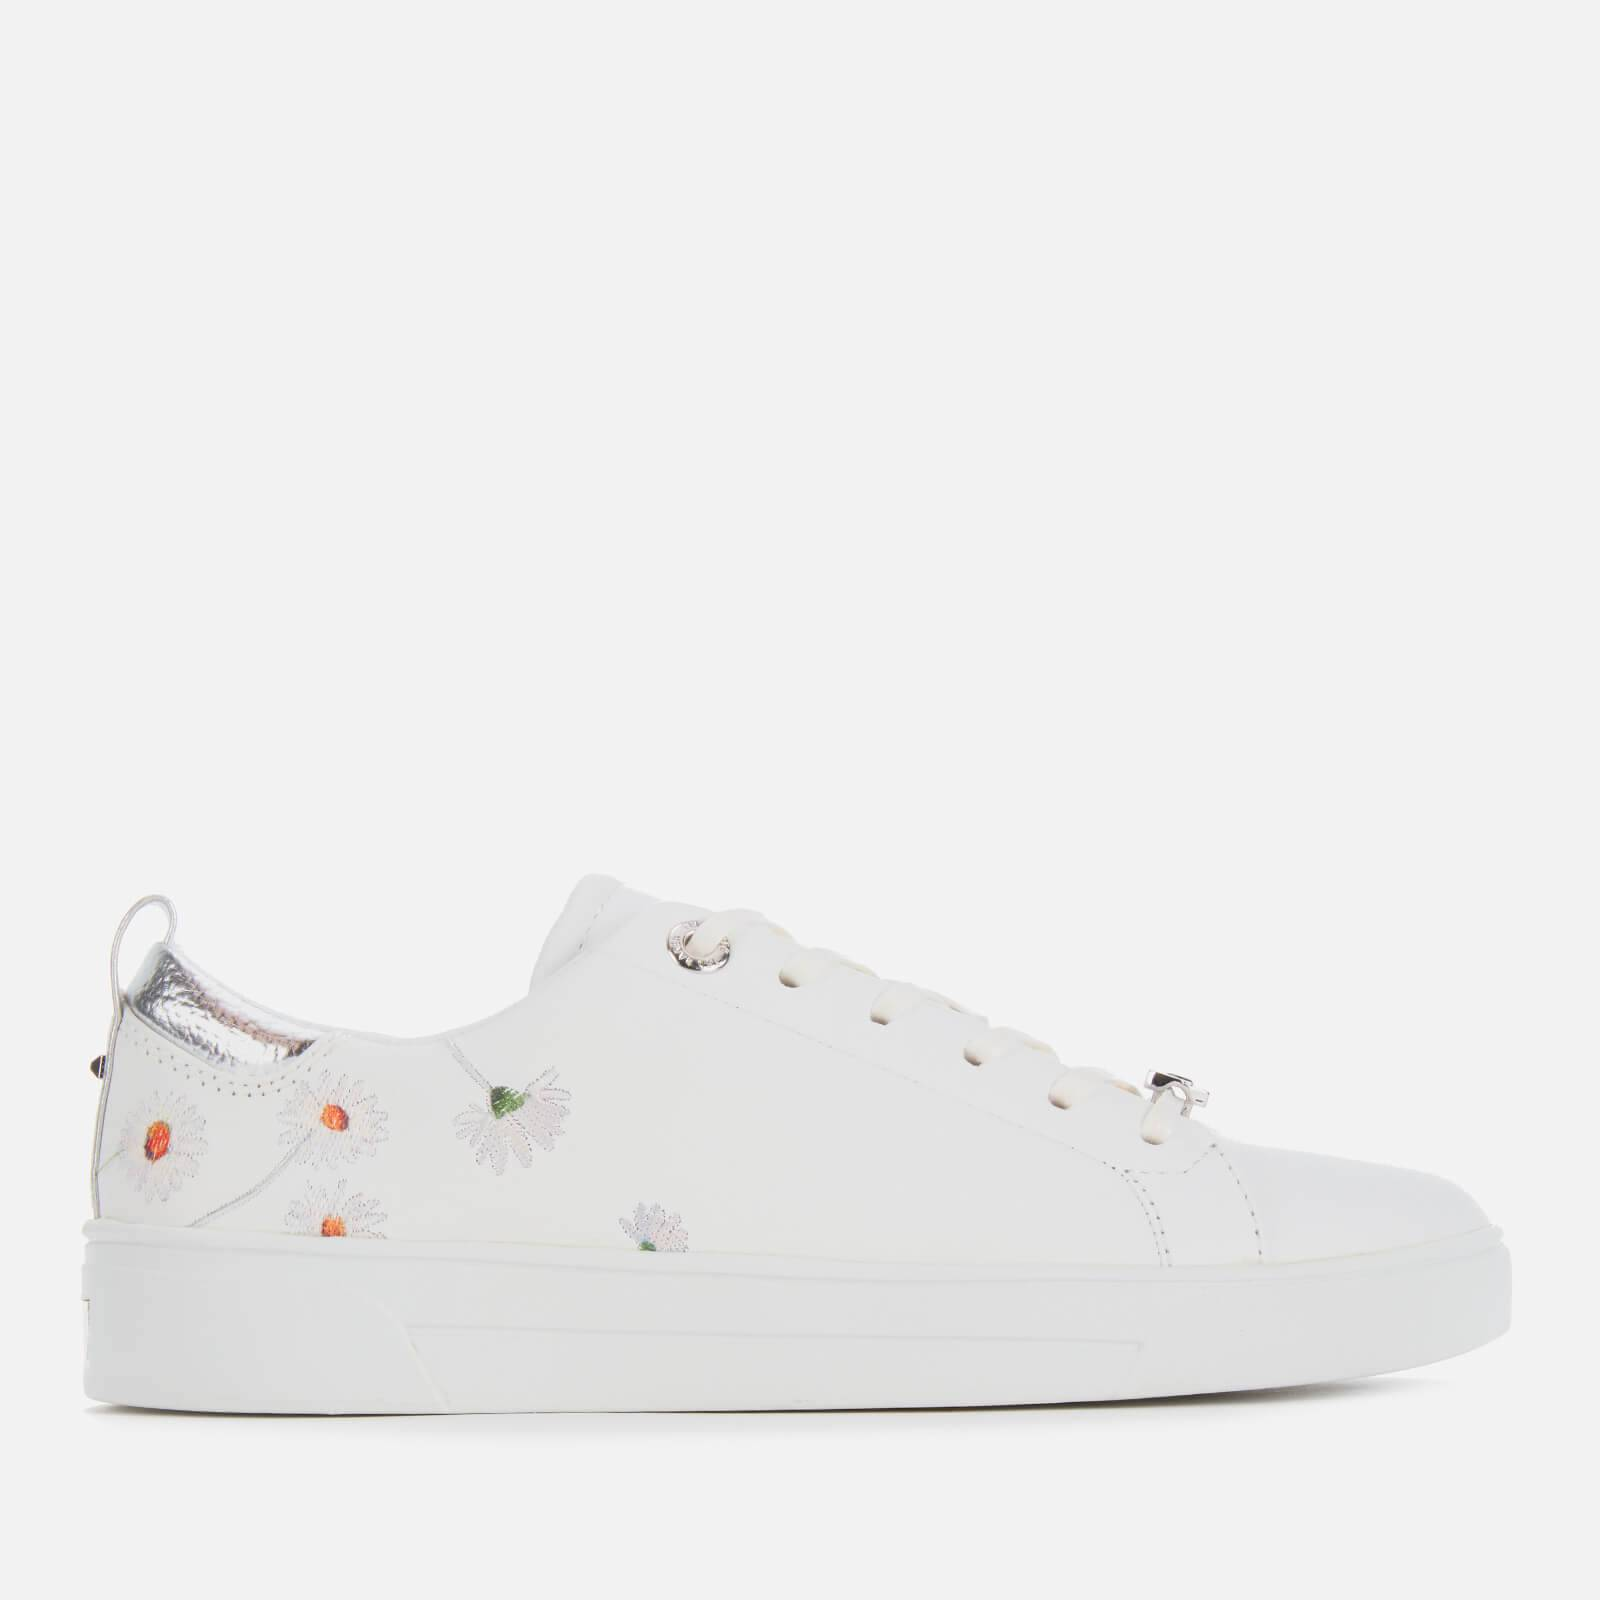 Ted Baker Women's Chalene Leather Low Top Trainers - White - UK 3 - White